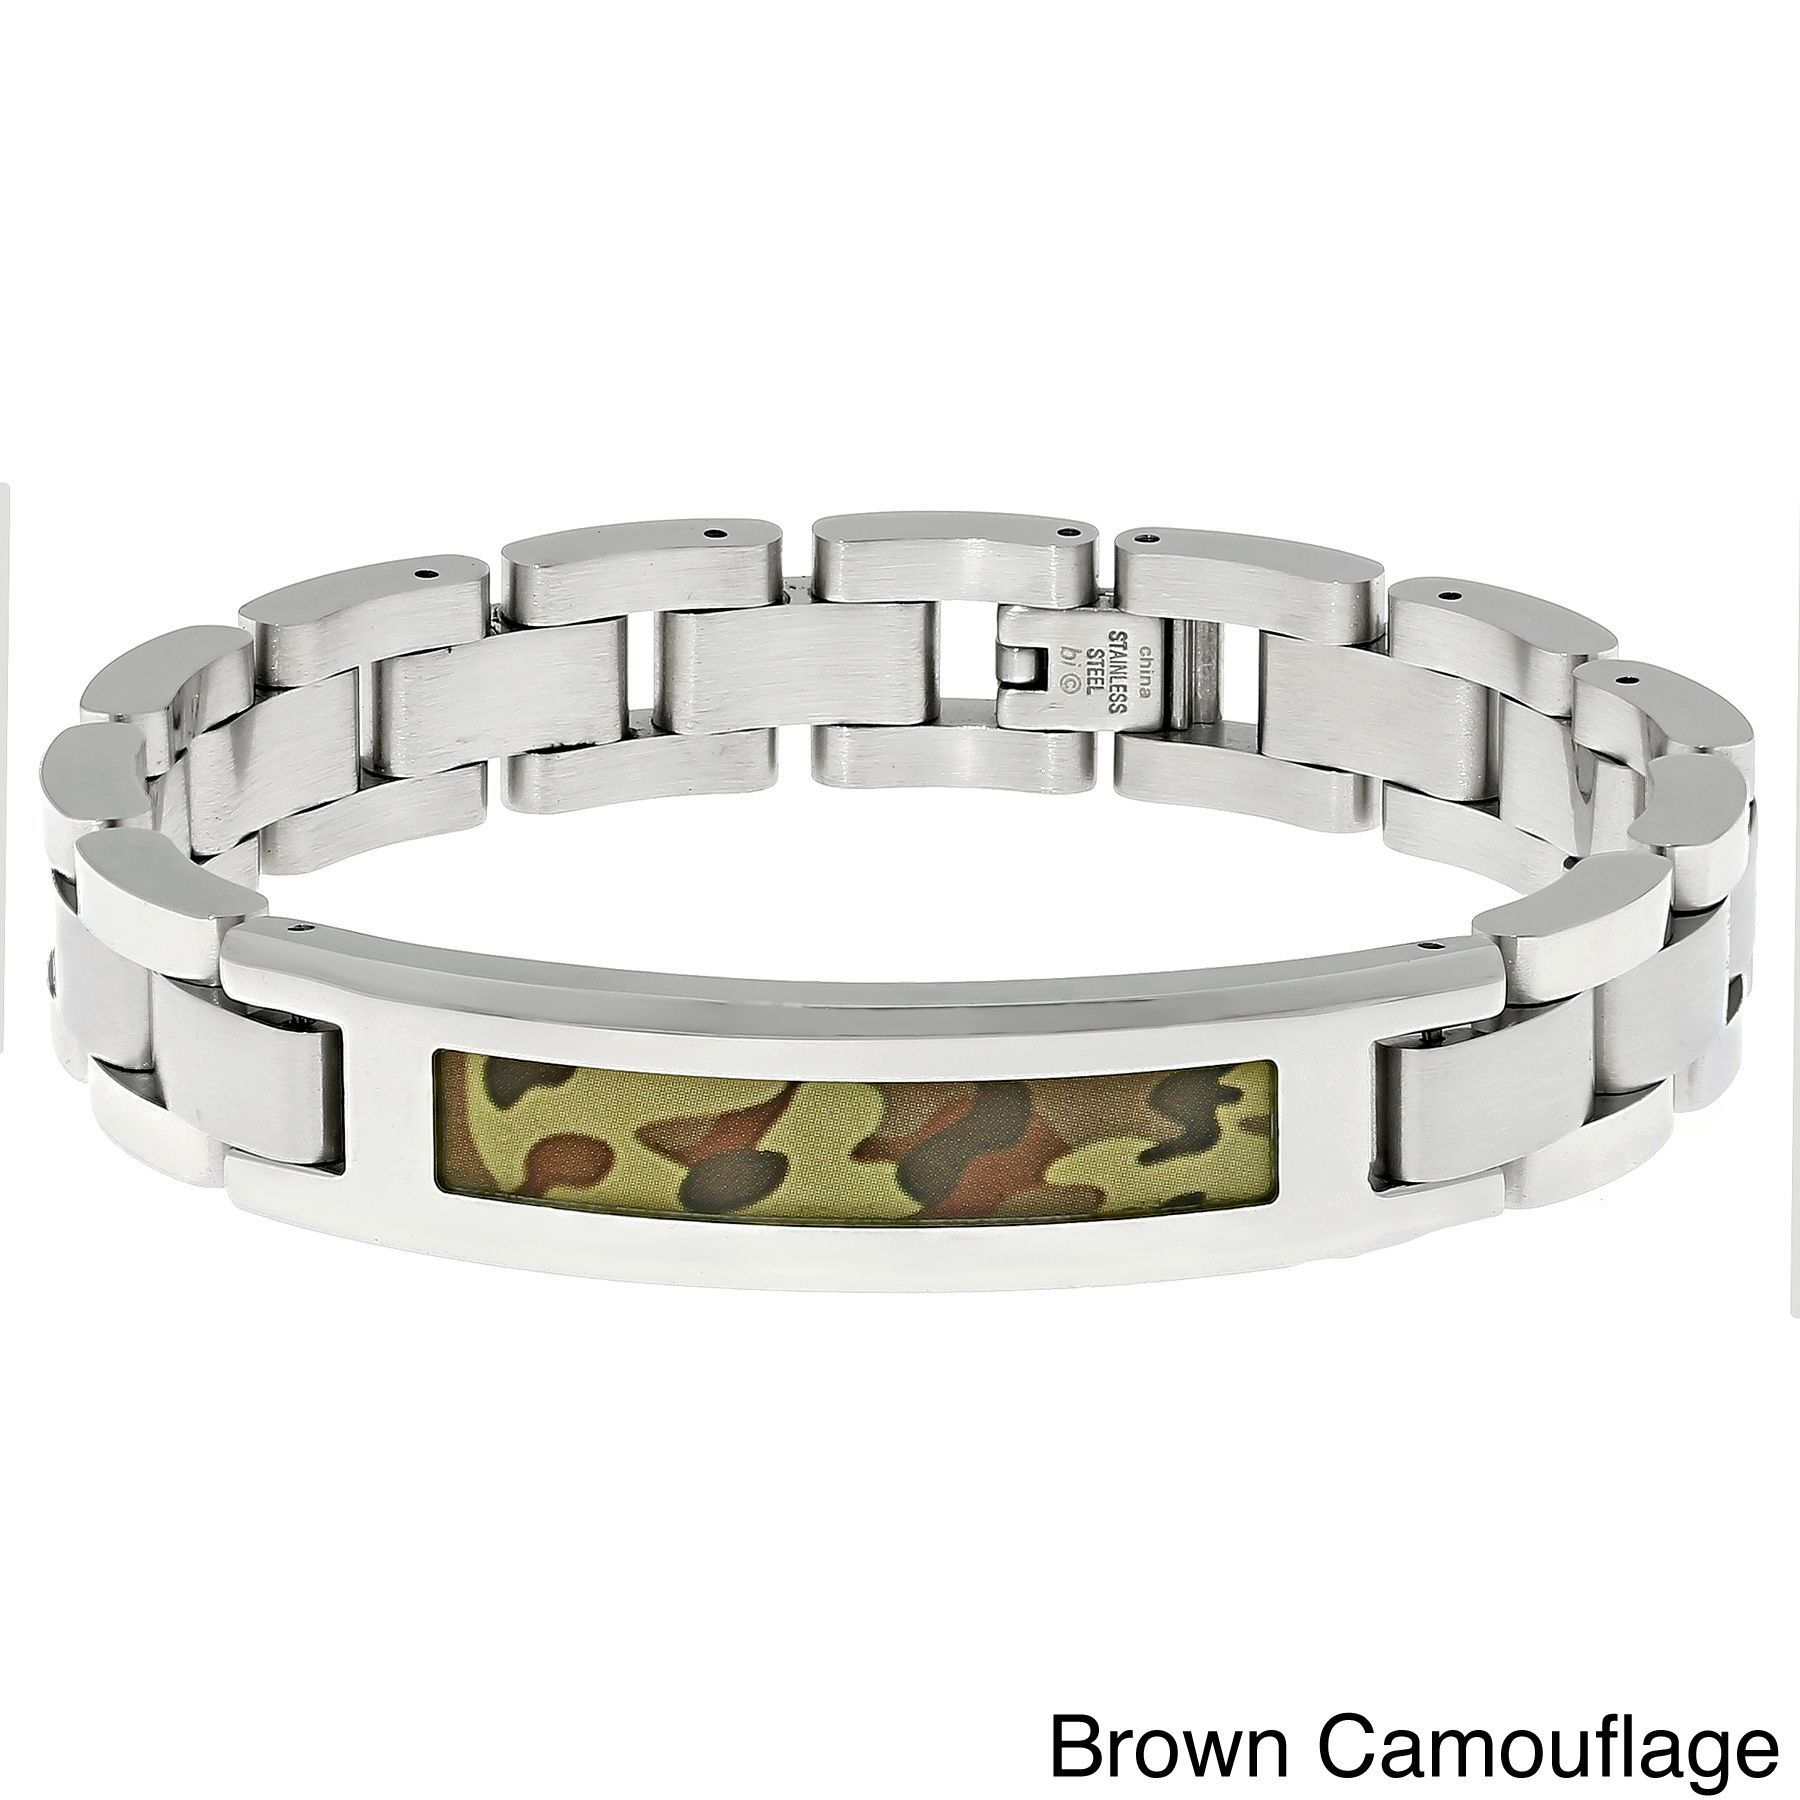 Stainless Steel Link Bracelet with Camouflage Accent (Brown Camouflage Link Bracelet), Men's, Size: 8.5 Inch, White